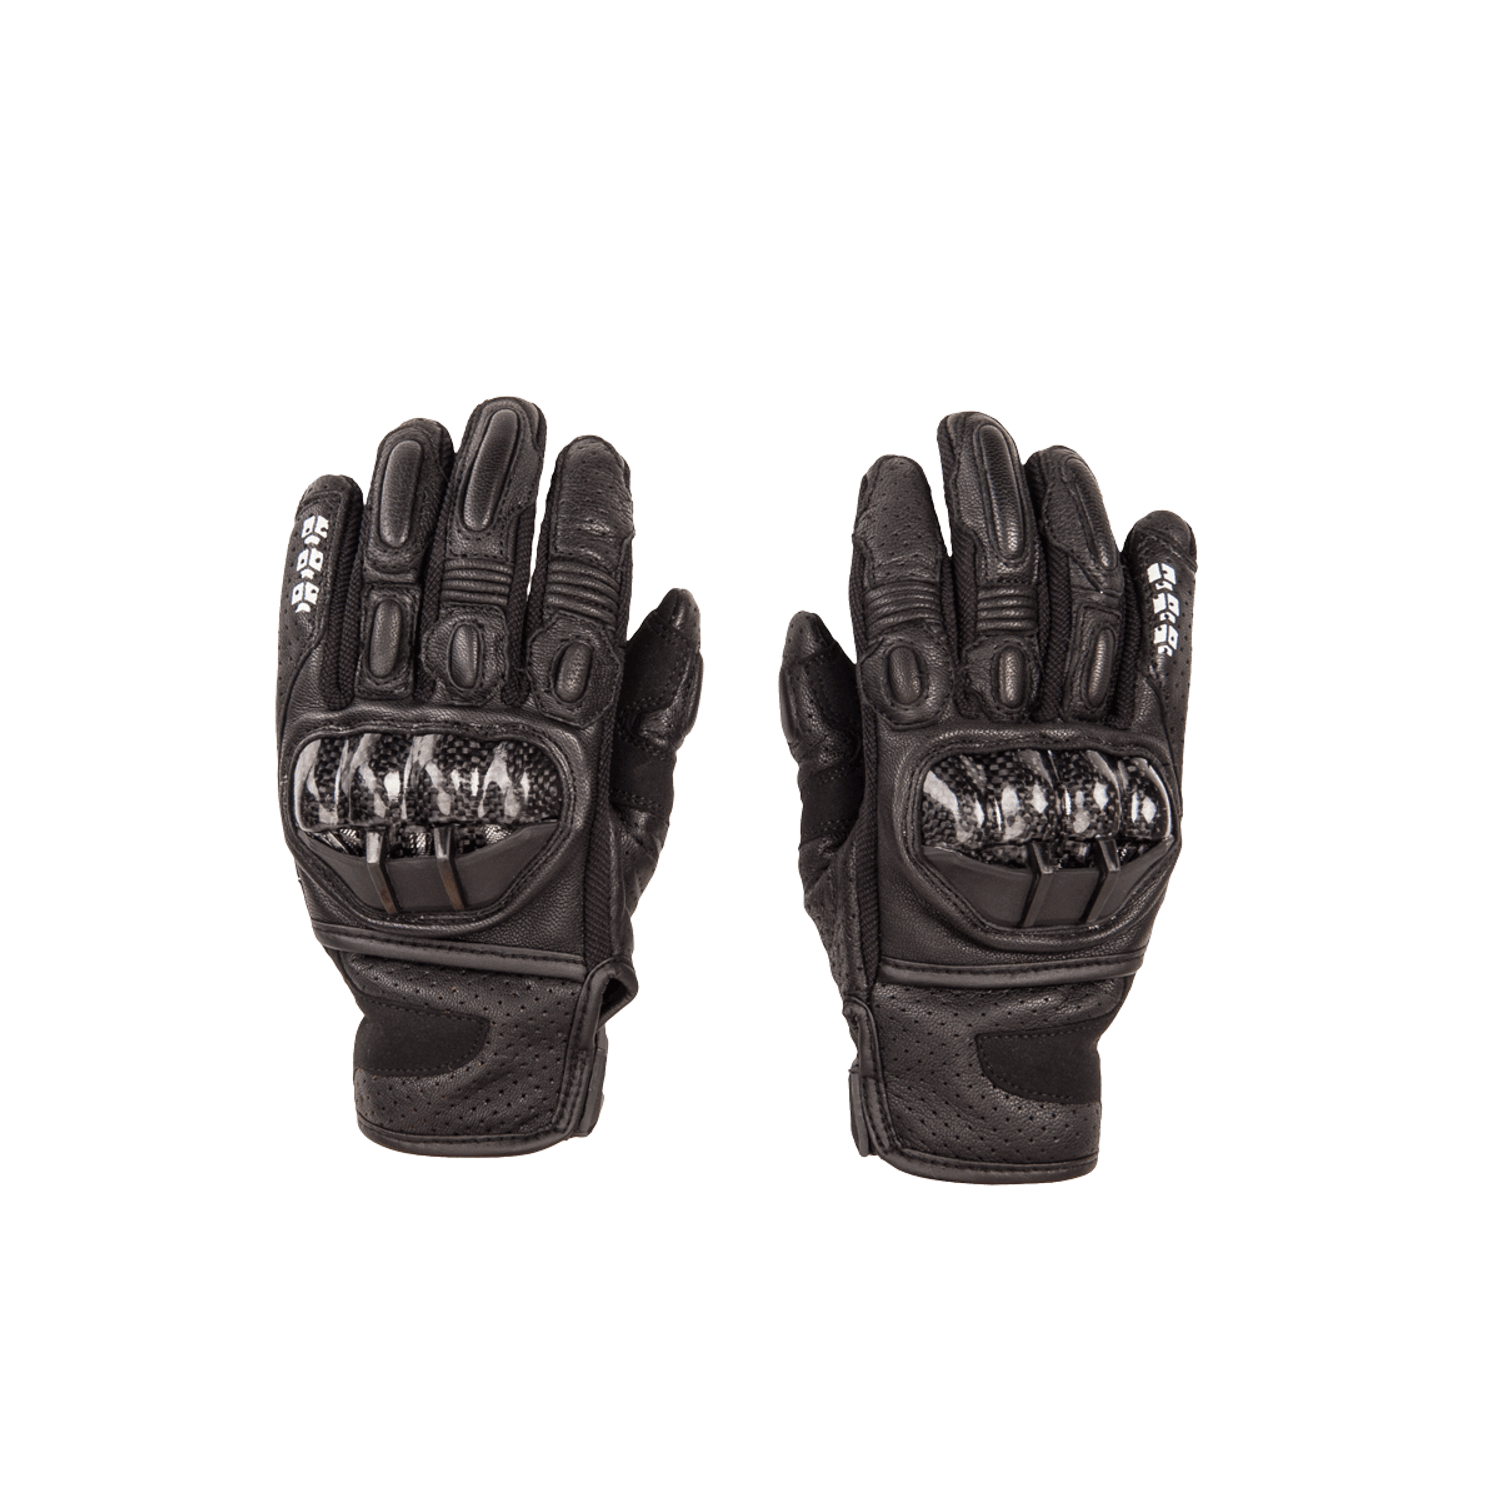 741a71896c239 GUANTES MUJER FORCE Ref GUAU - Bosi Colombia